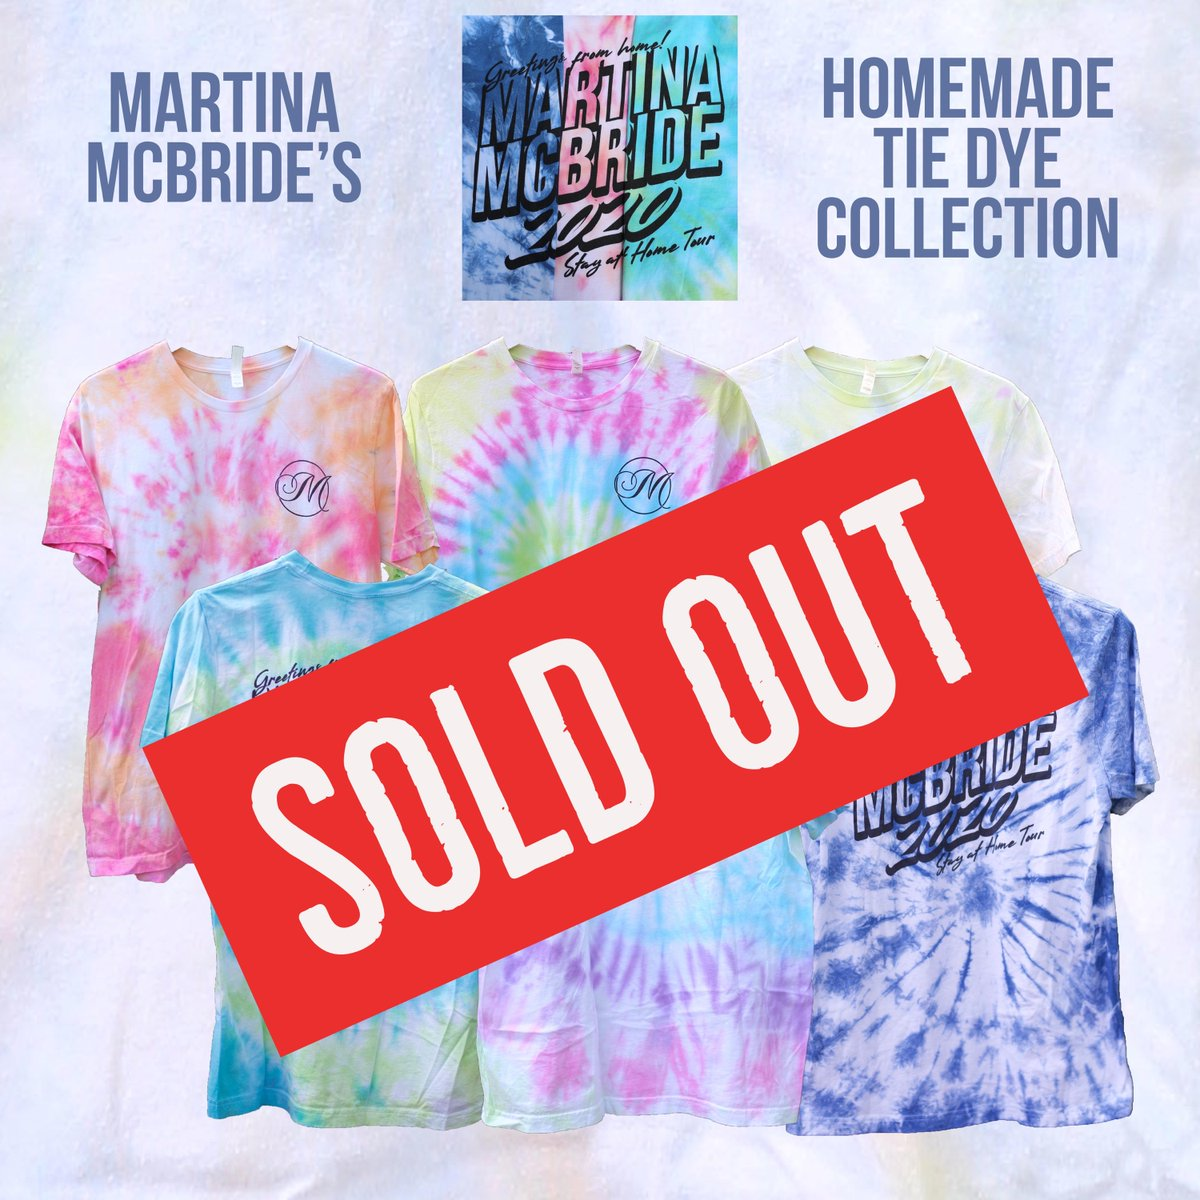 Thank you so much! I had intended for this to be a one-time thing but due to the overwhelming demand, we're going to print another round. Itll take some time as every shirt is hand-dyed by my daughters & I. I promise to have them ready asap! Let's keep raising money for charity.